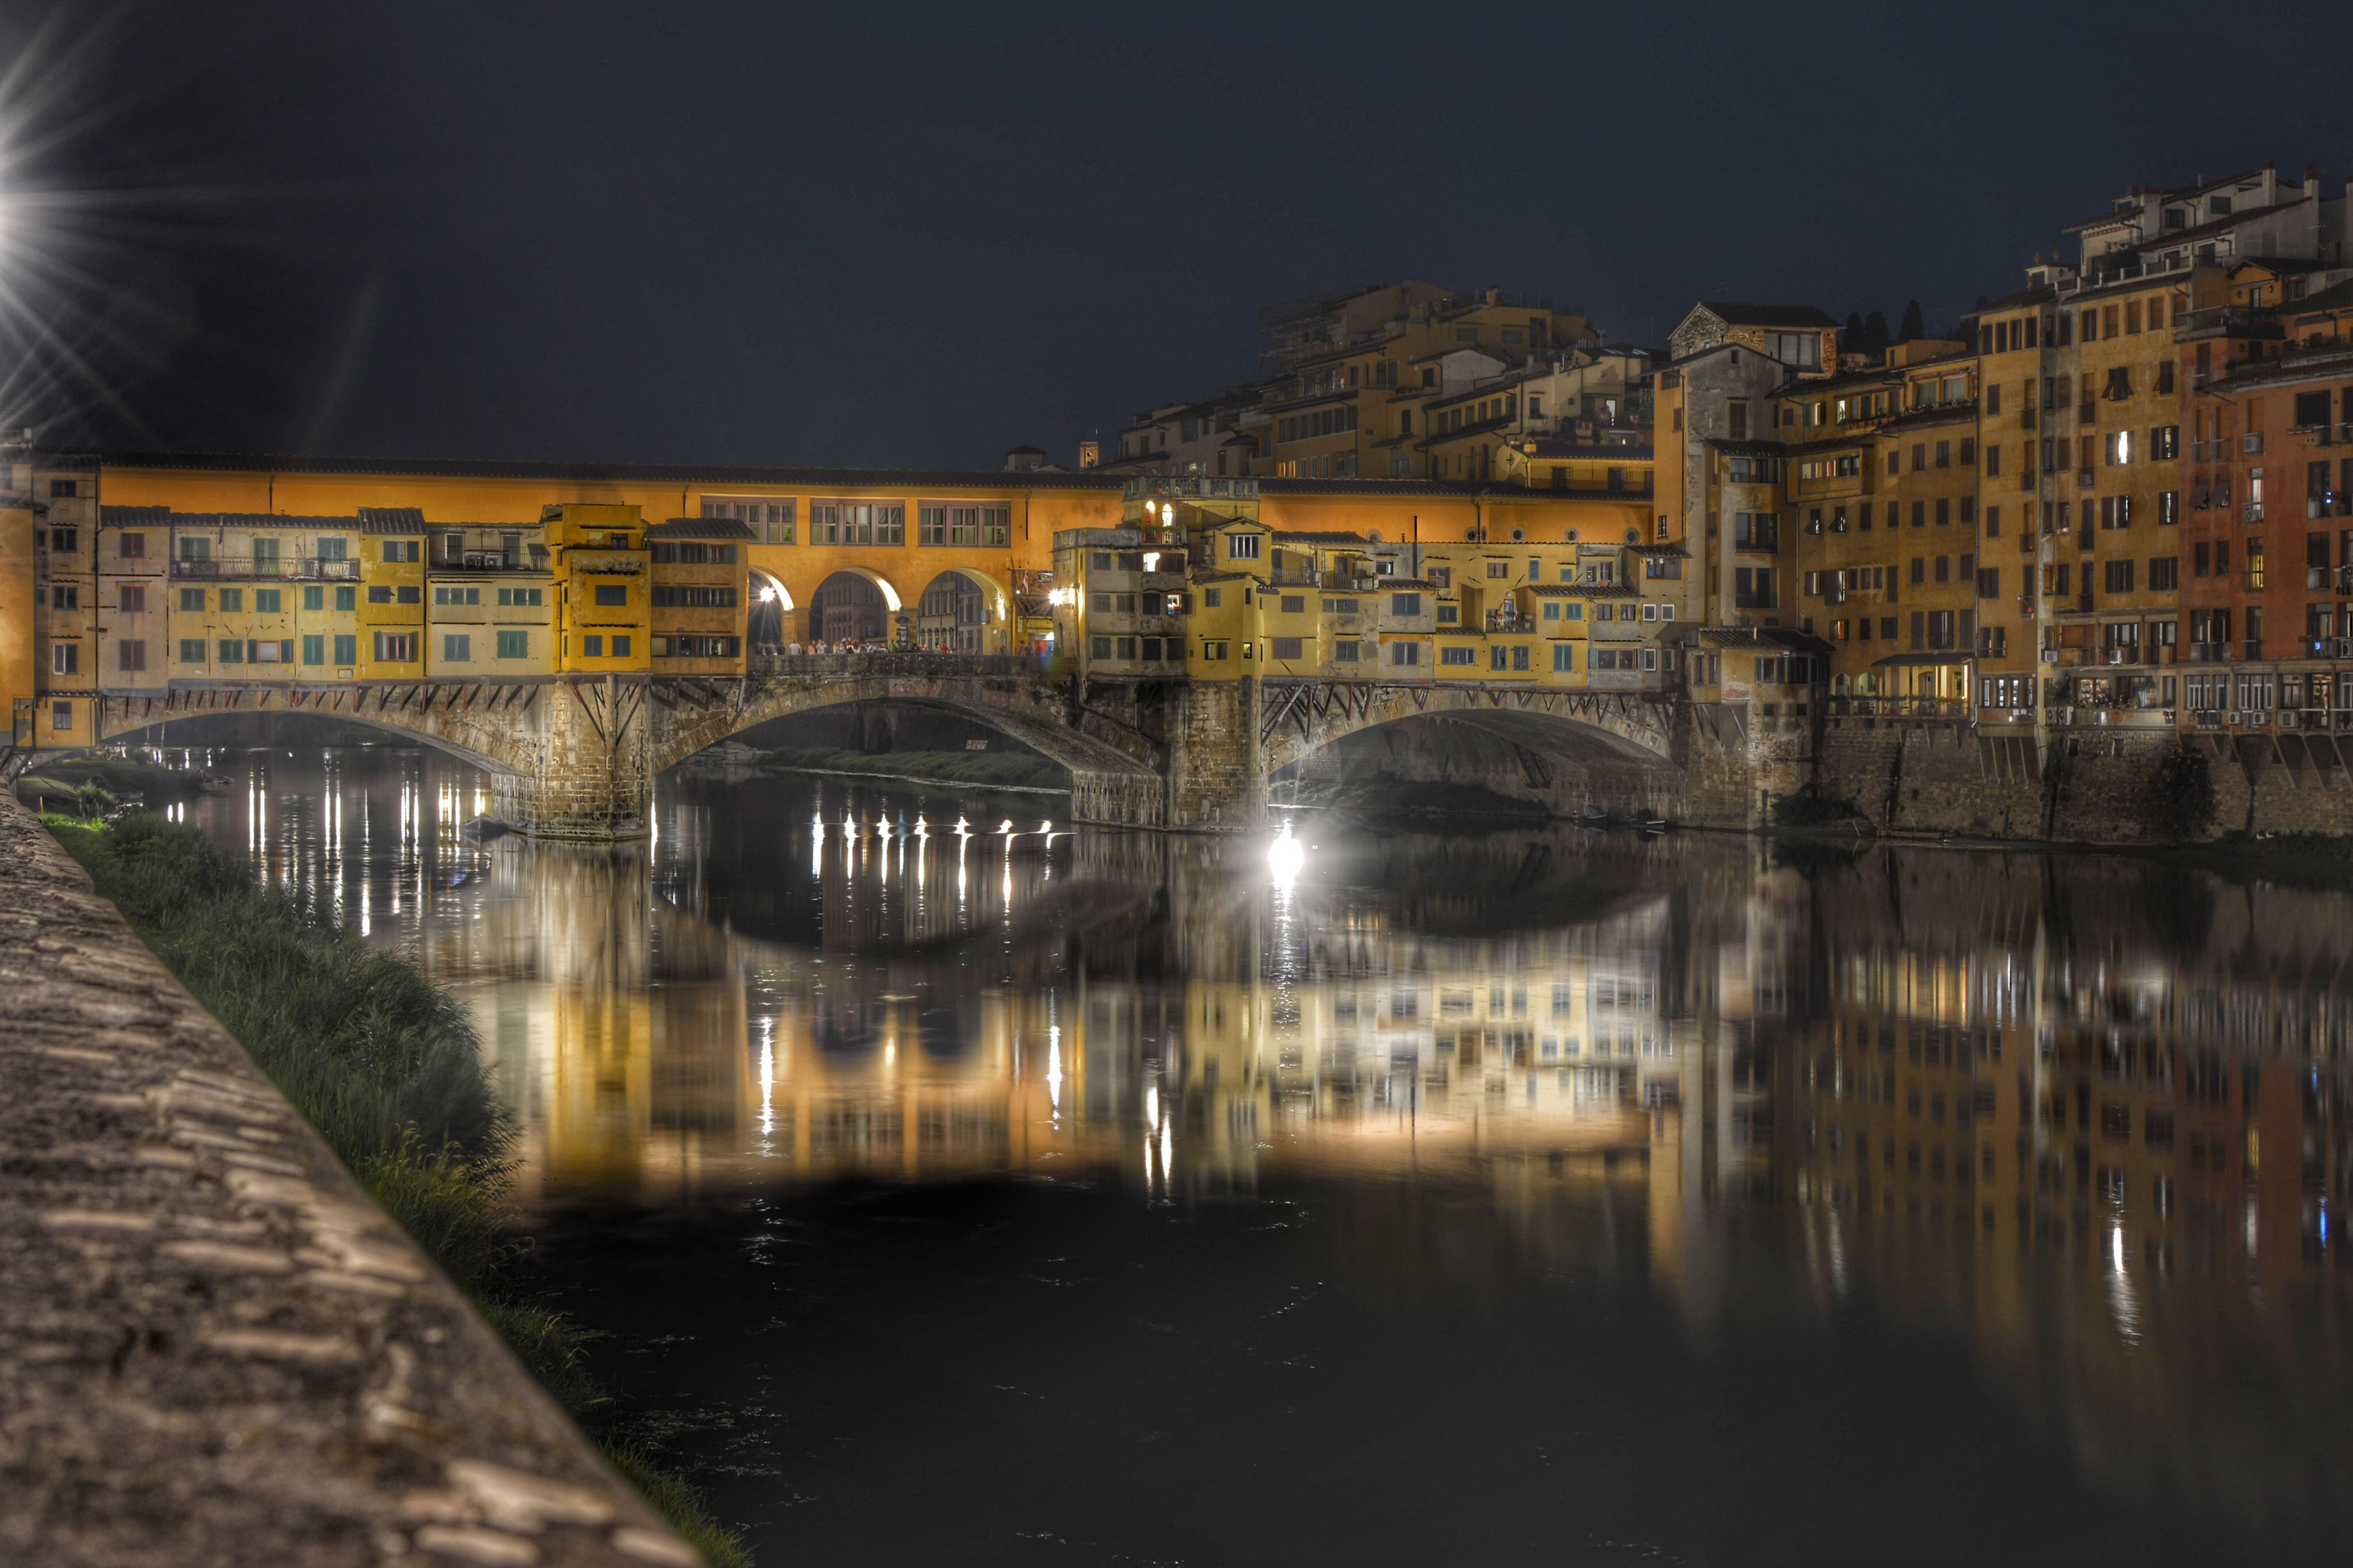 architecture, built structure, building exterior, illuminated, connection, bridge - man made structure, water, reflection, night, city, waterfront, river, arch, residential building, residential structure, engineering, standing water, city life, outdoors, ponte vecchio, sky, residential district, bridge, electric light, canal, no people